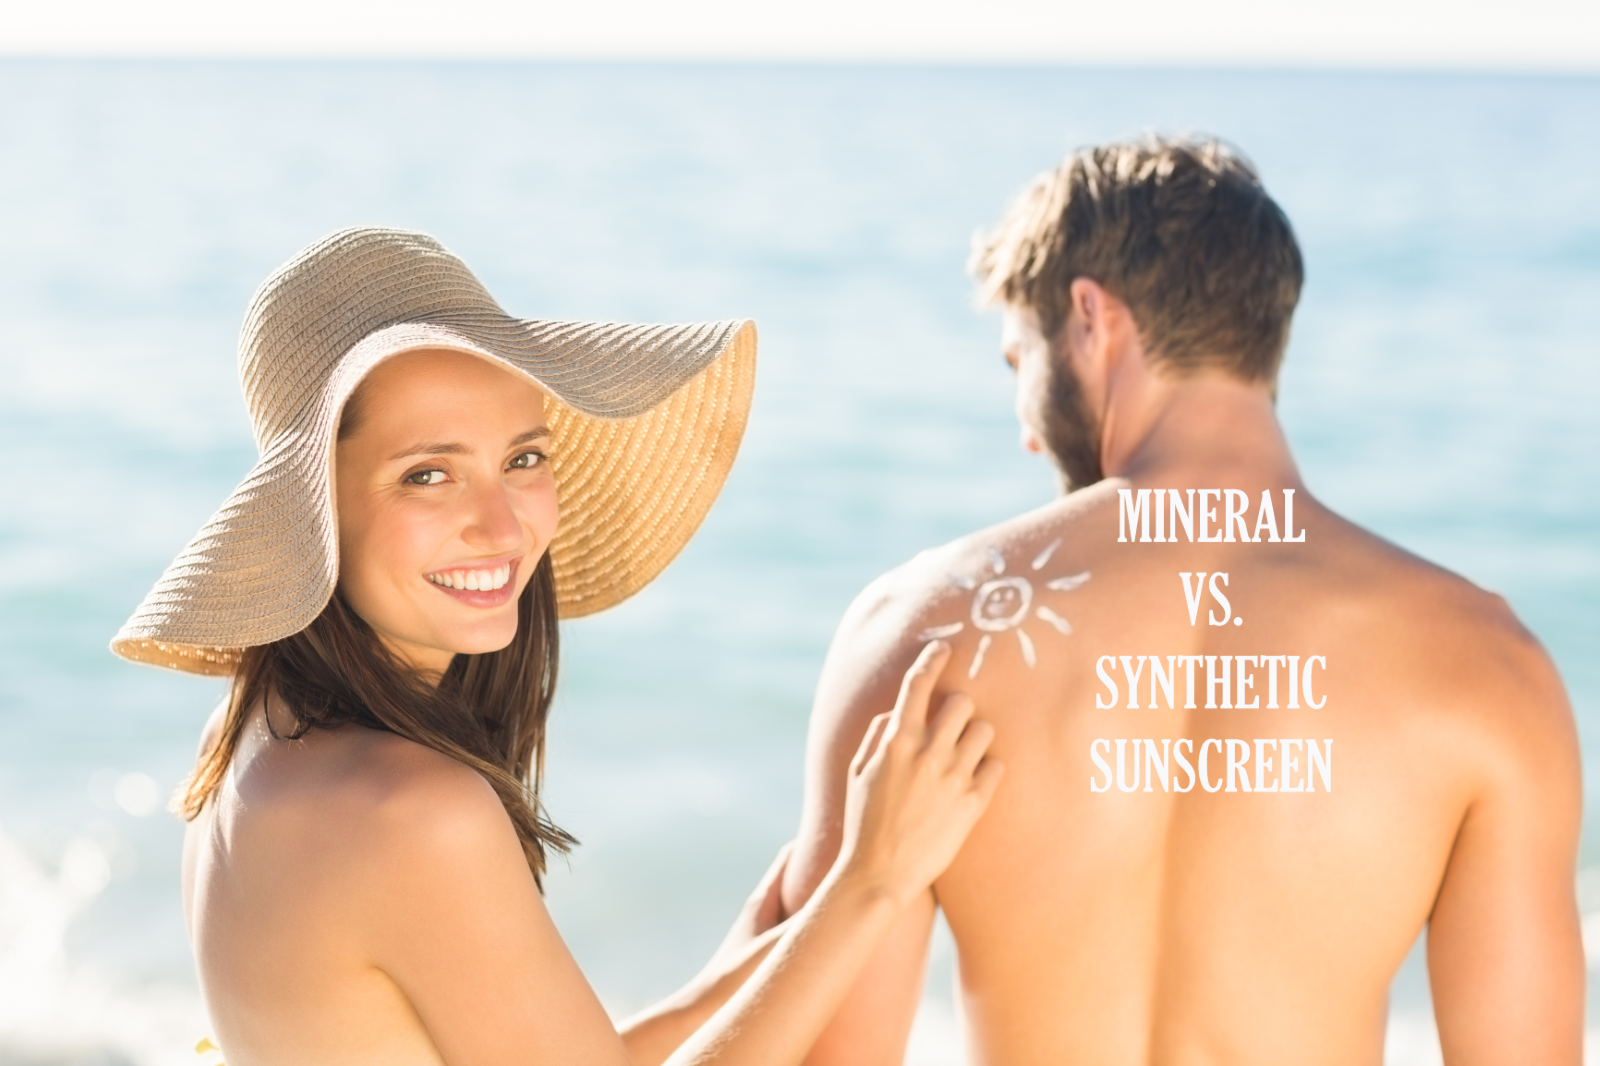 Mineral and Synthetic Sunscreen